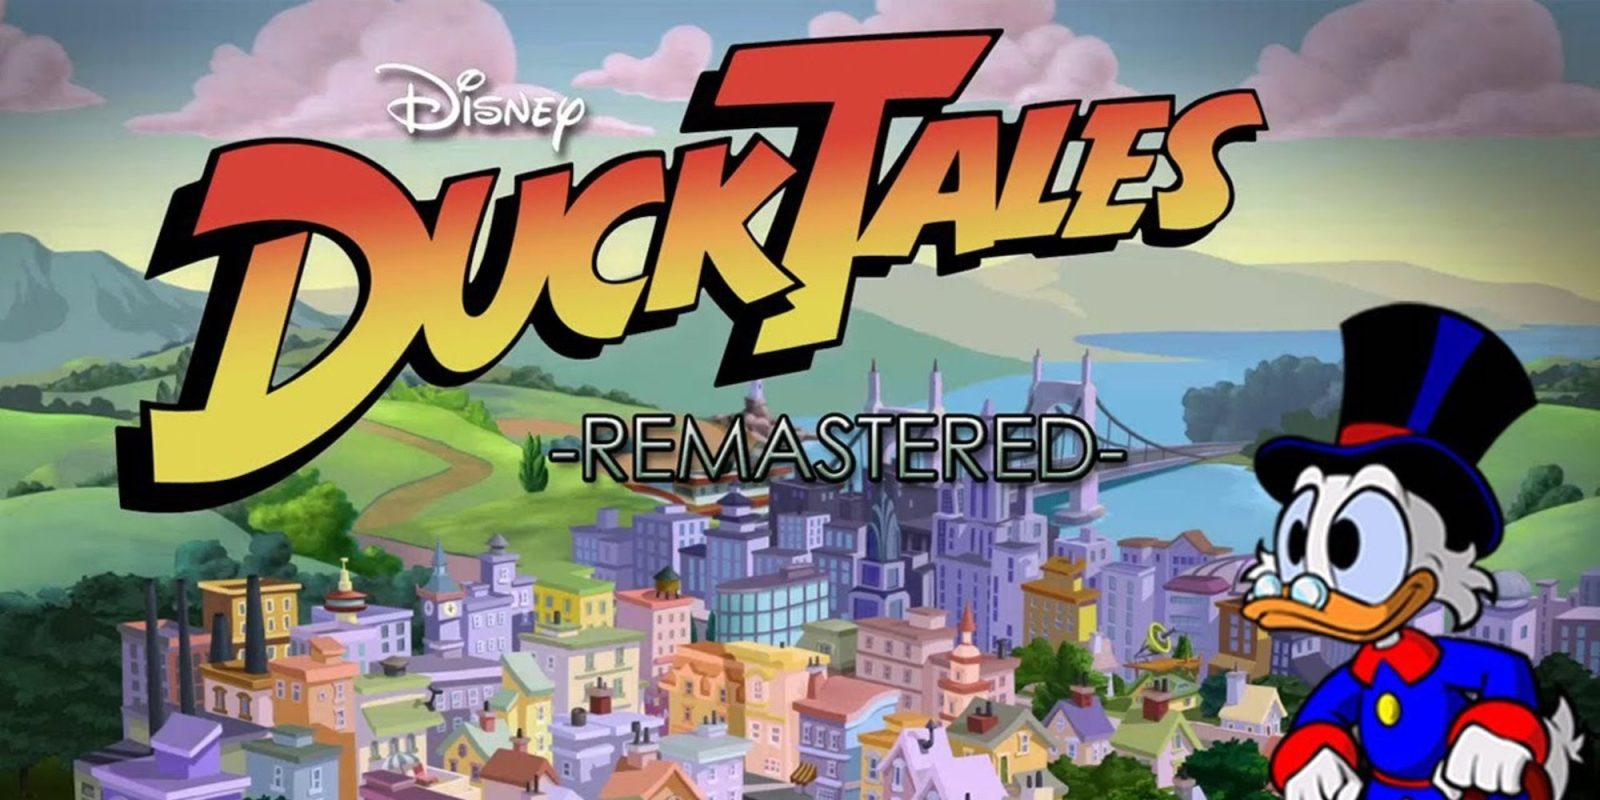 Download DuckTales Remastered before it gets pulled, now on sale under $4